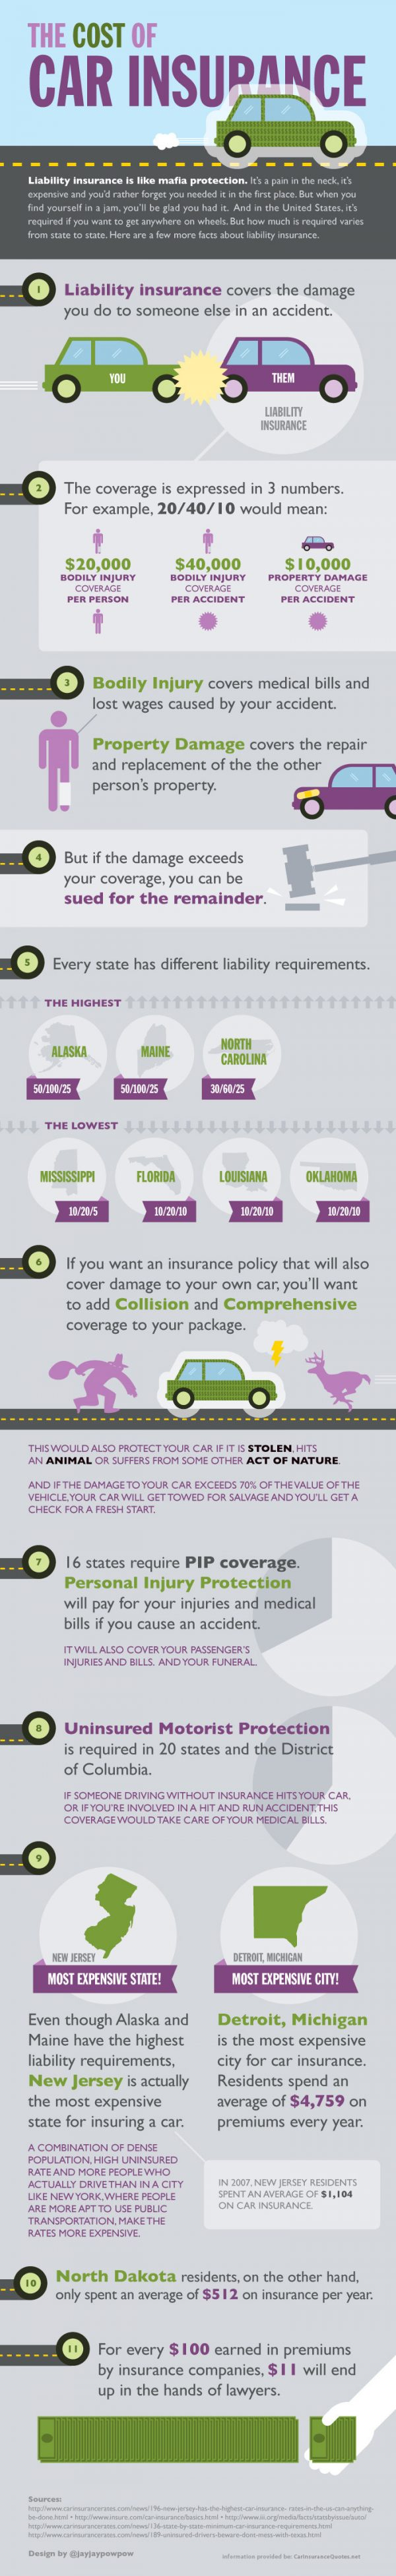 The Cost of Car Insurance (Infographic)